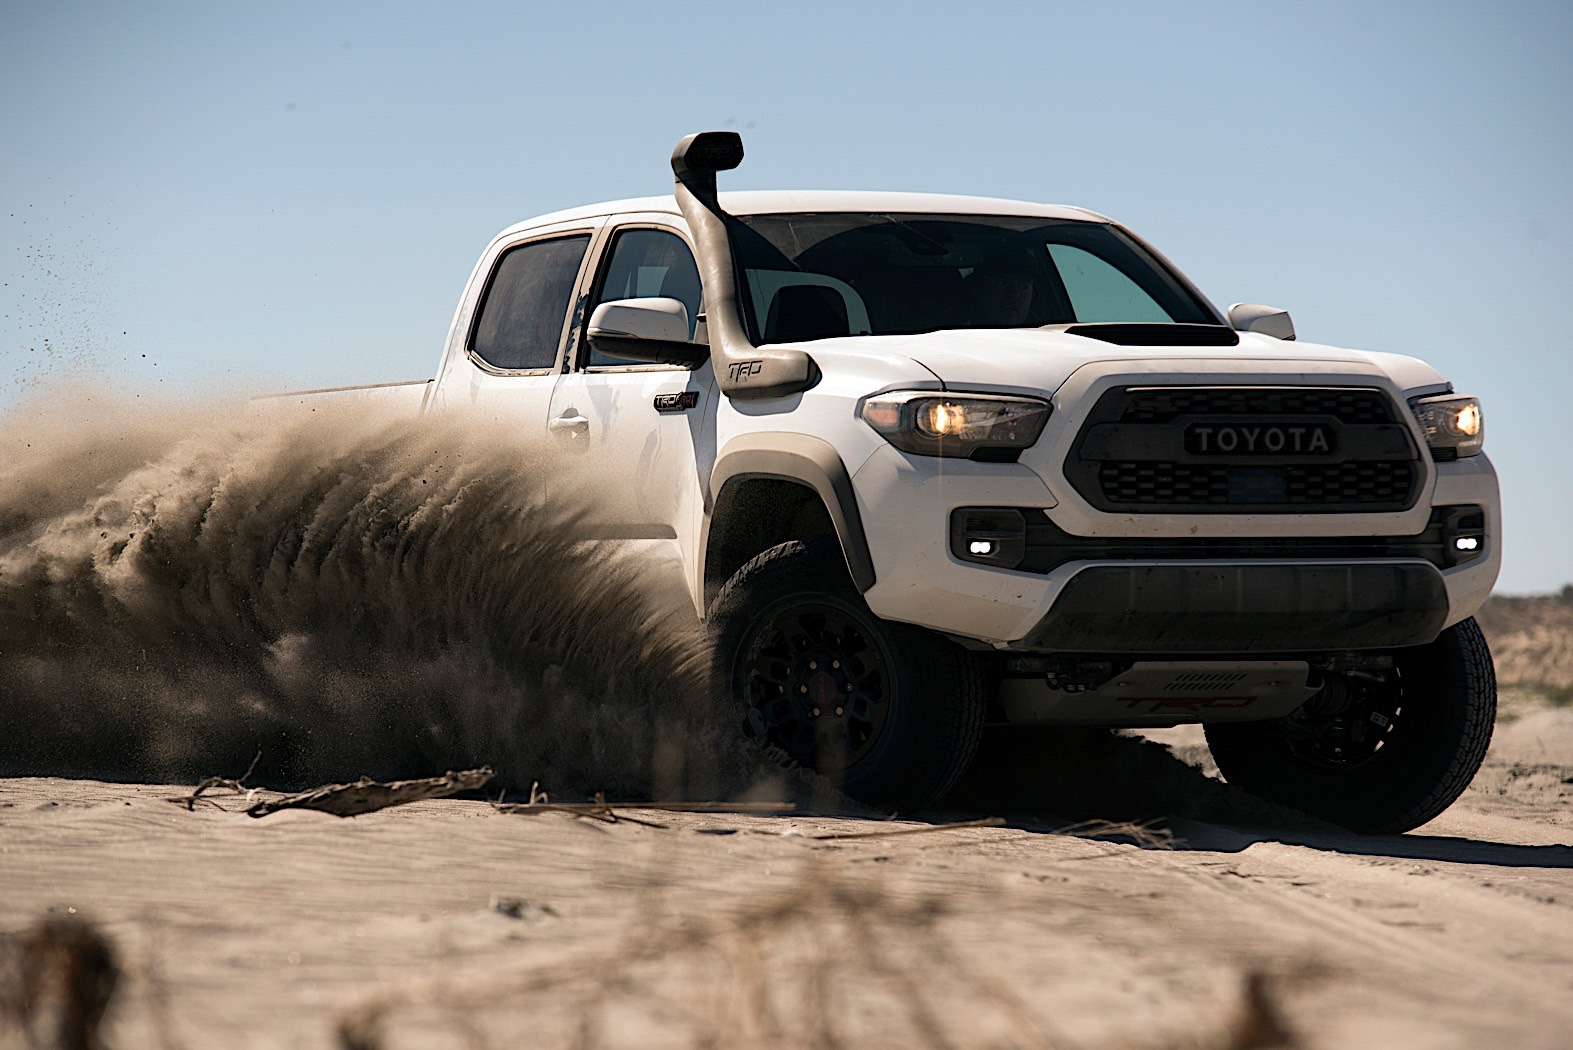 Toyota TRD Pro off-road lineup debuts in Chicago